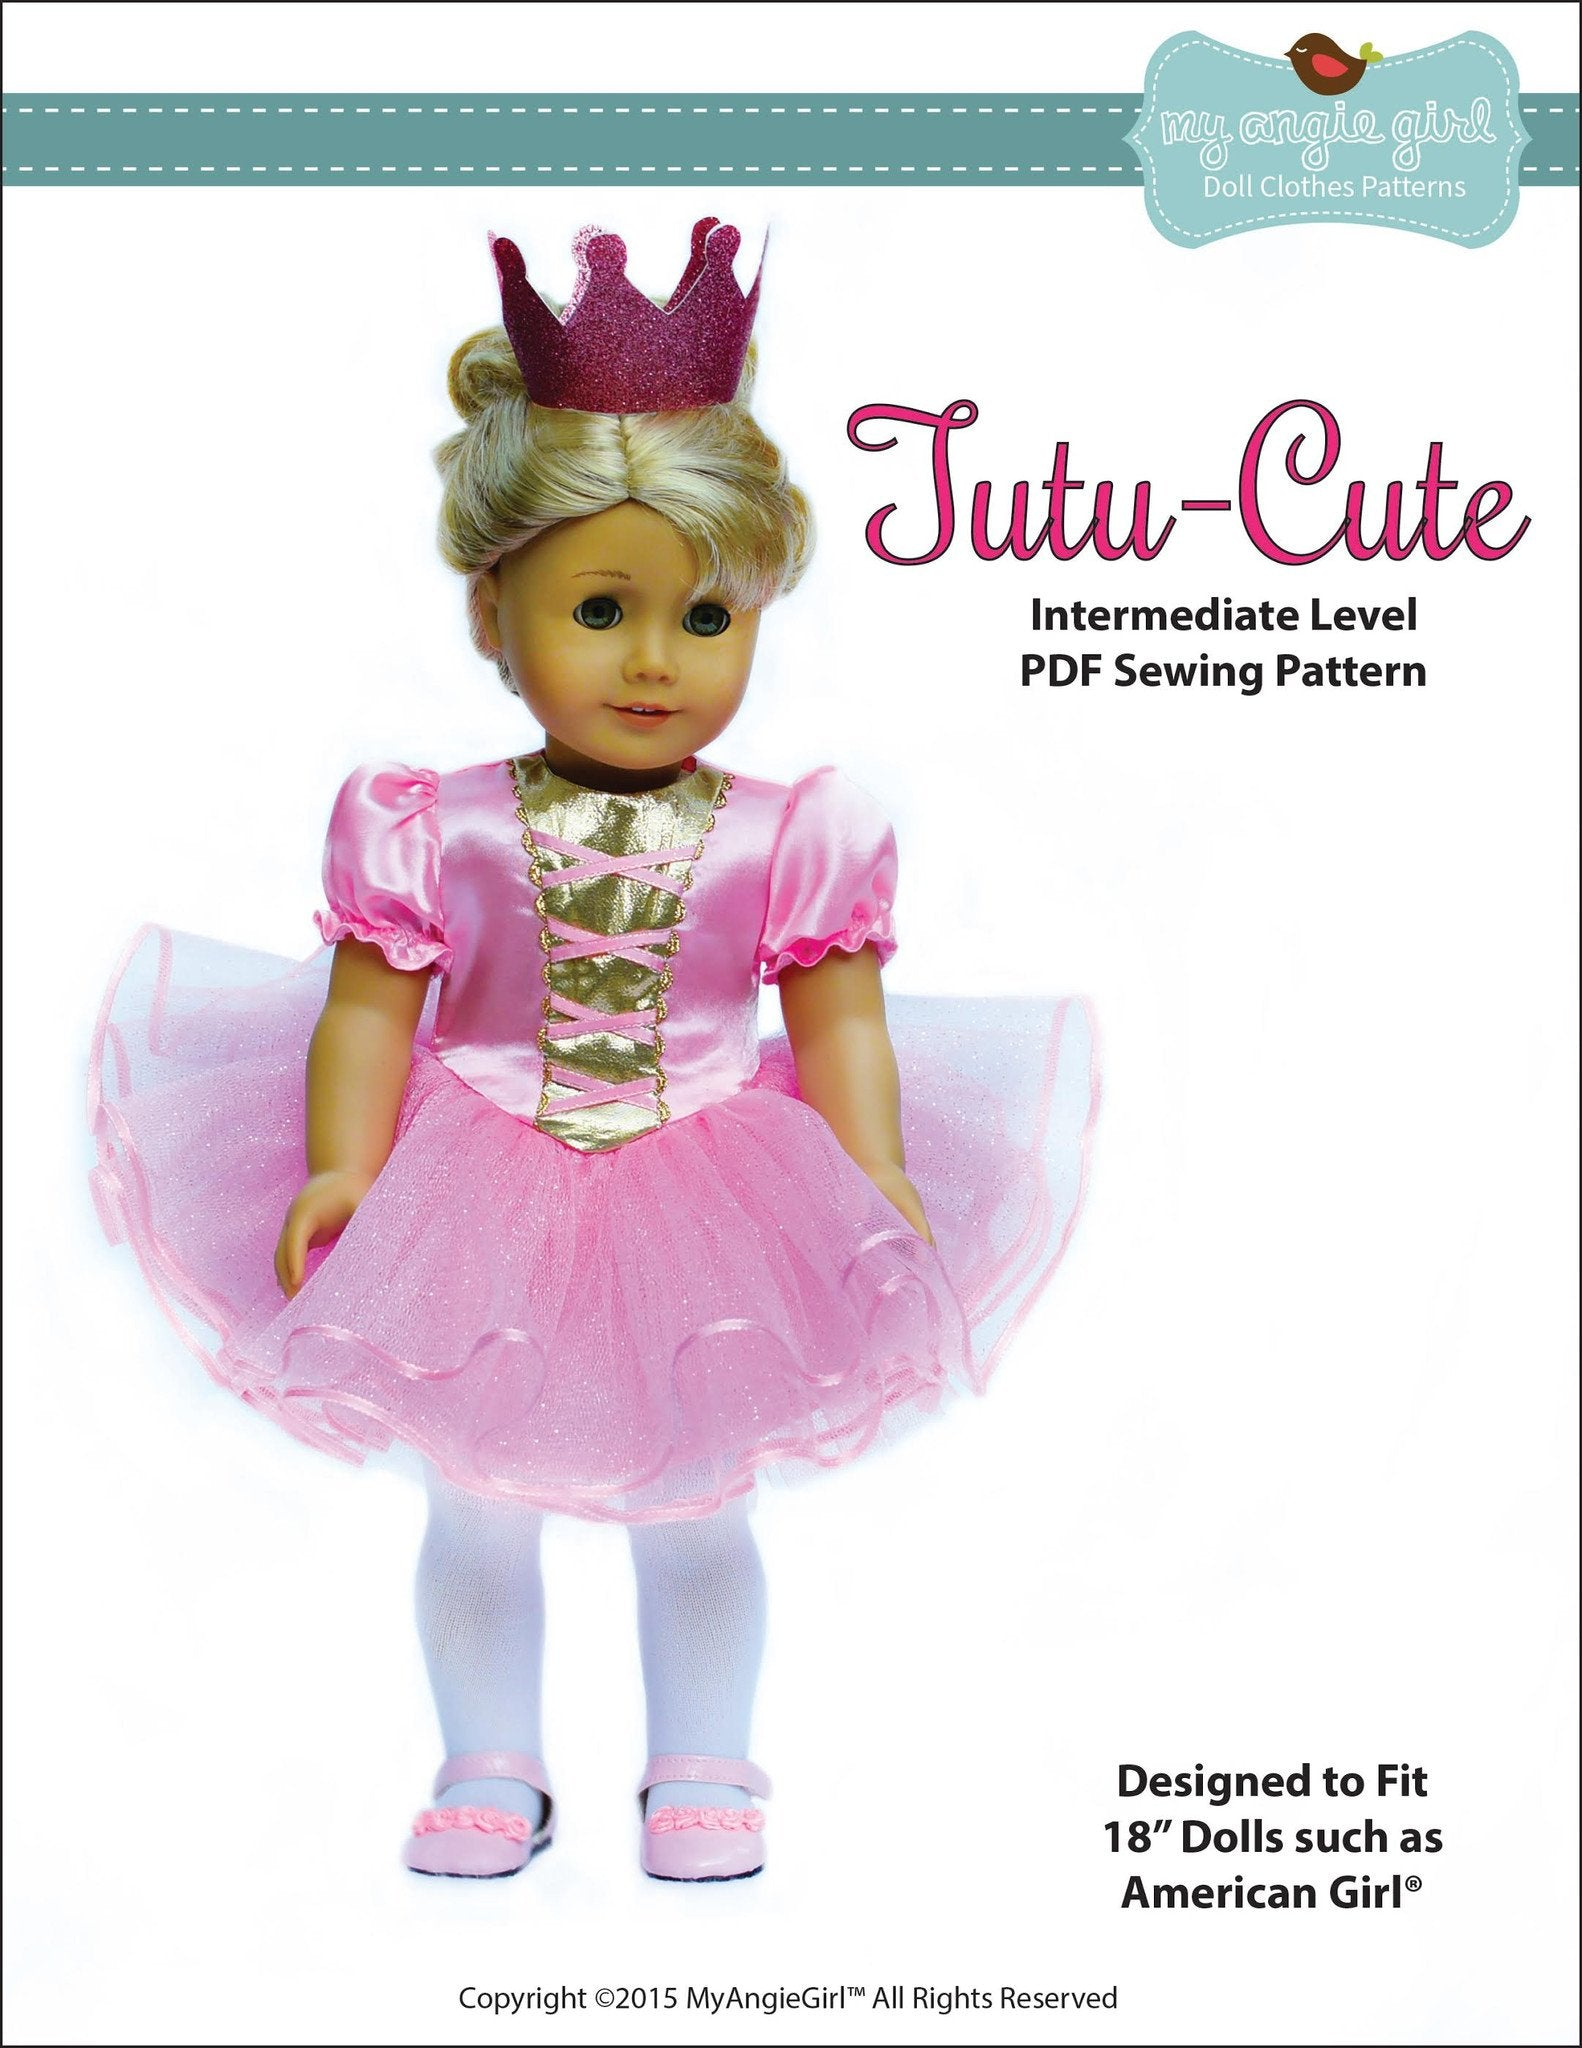 My Angie Girl Tutu Cute Story Book Dress-Up Costume Dress Doll ... 4ddc28a5c975